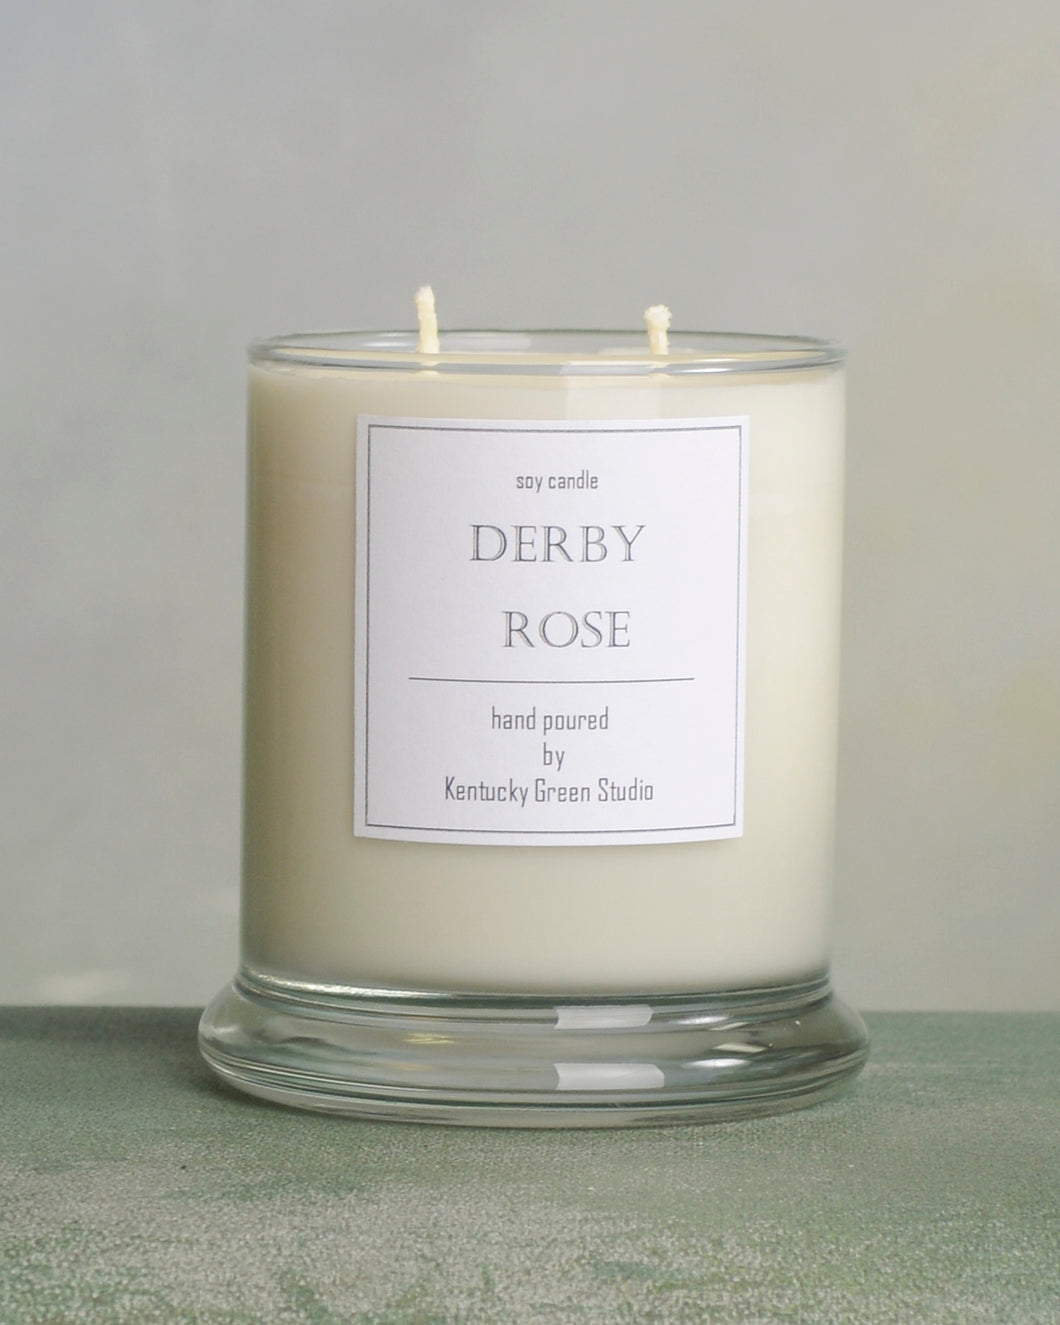 Derby Rose Soy Candles in Lexington, Kentucky (KY) & Tennessee (TN)